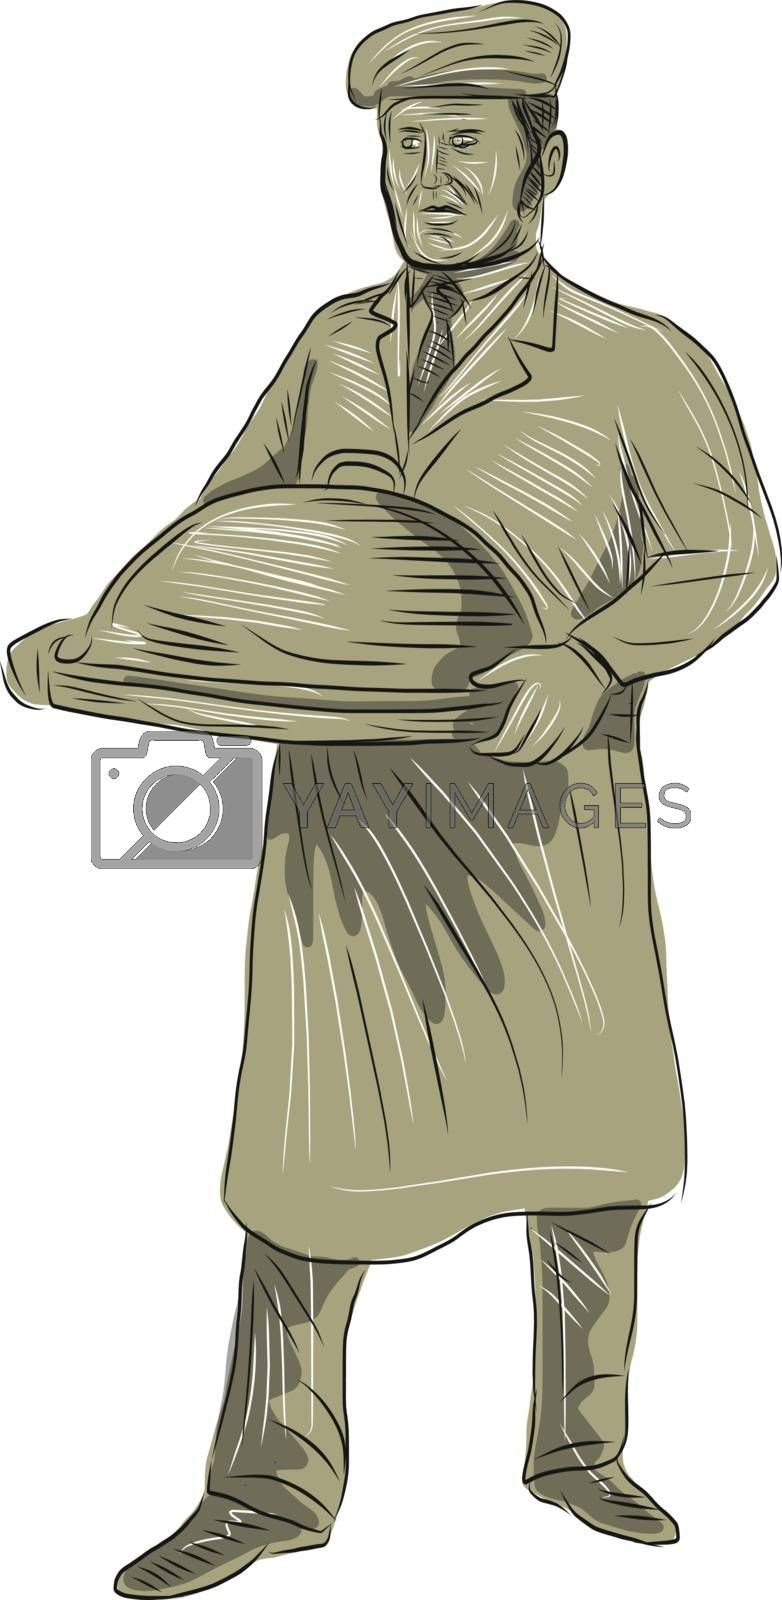 Drawing sketch style of a Victorian waiter holding serving food in a platter set on isolated white background.